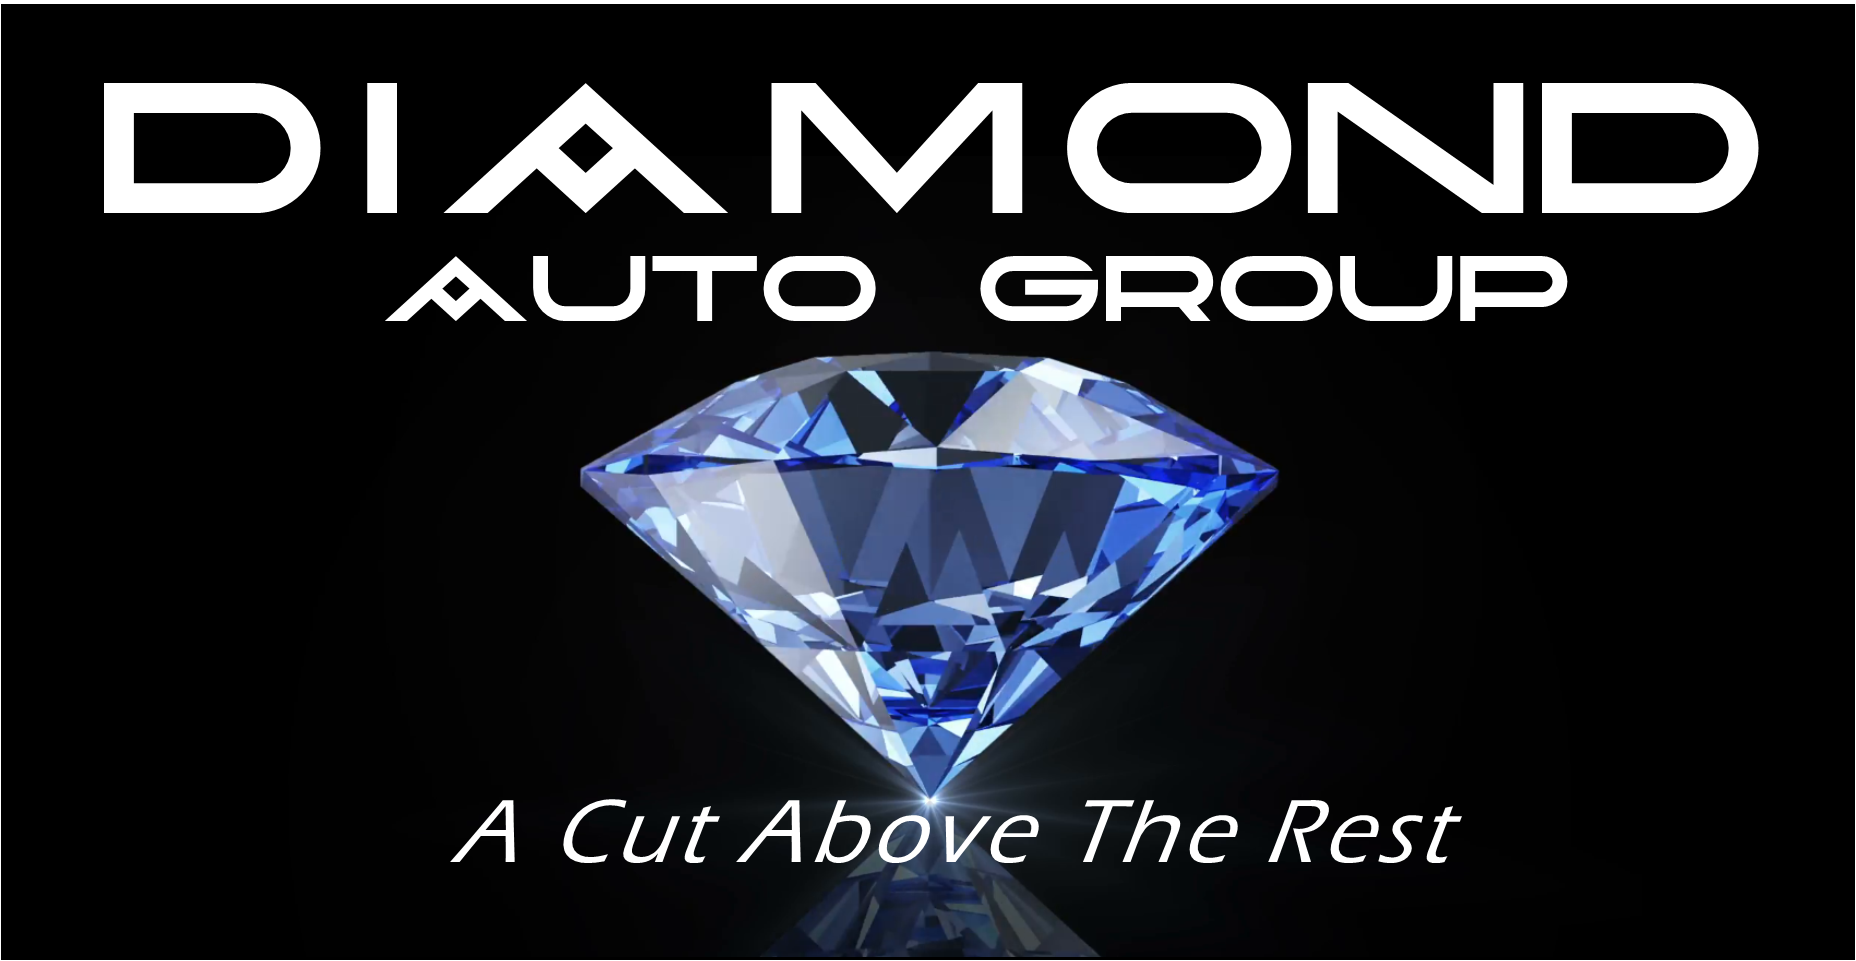 Diamond Auto Group LLC